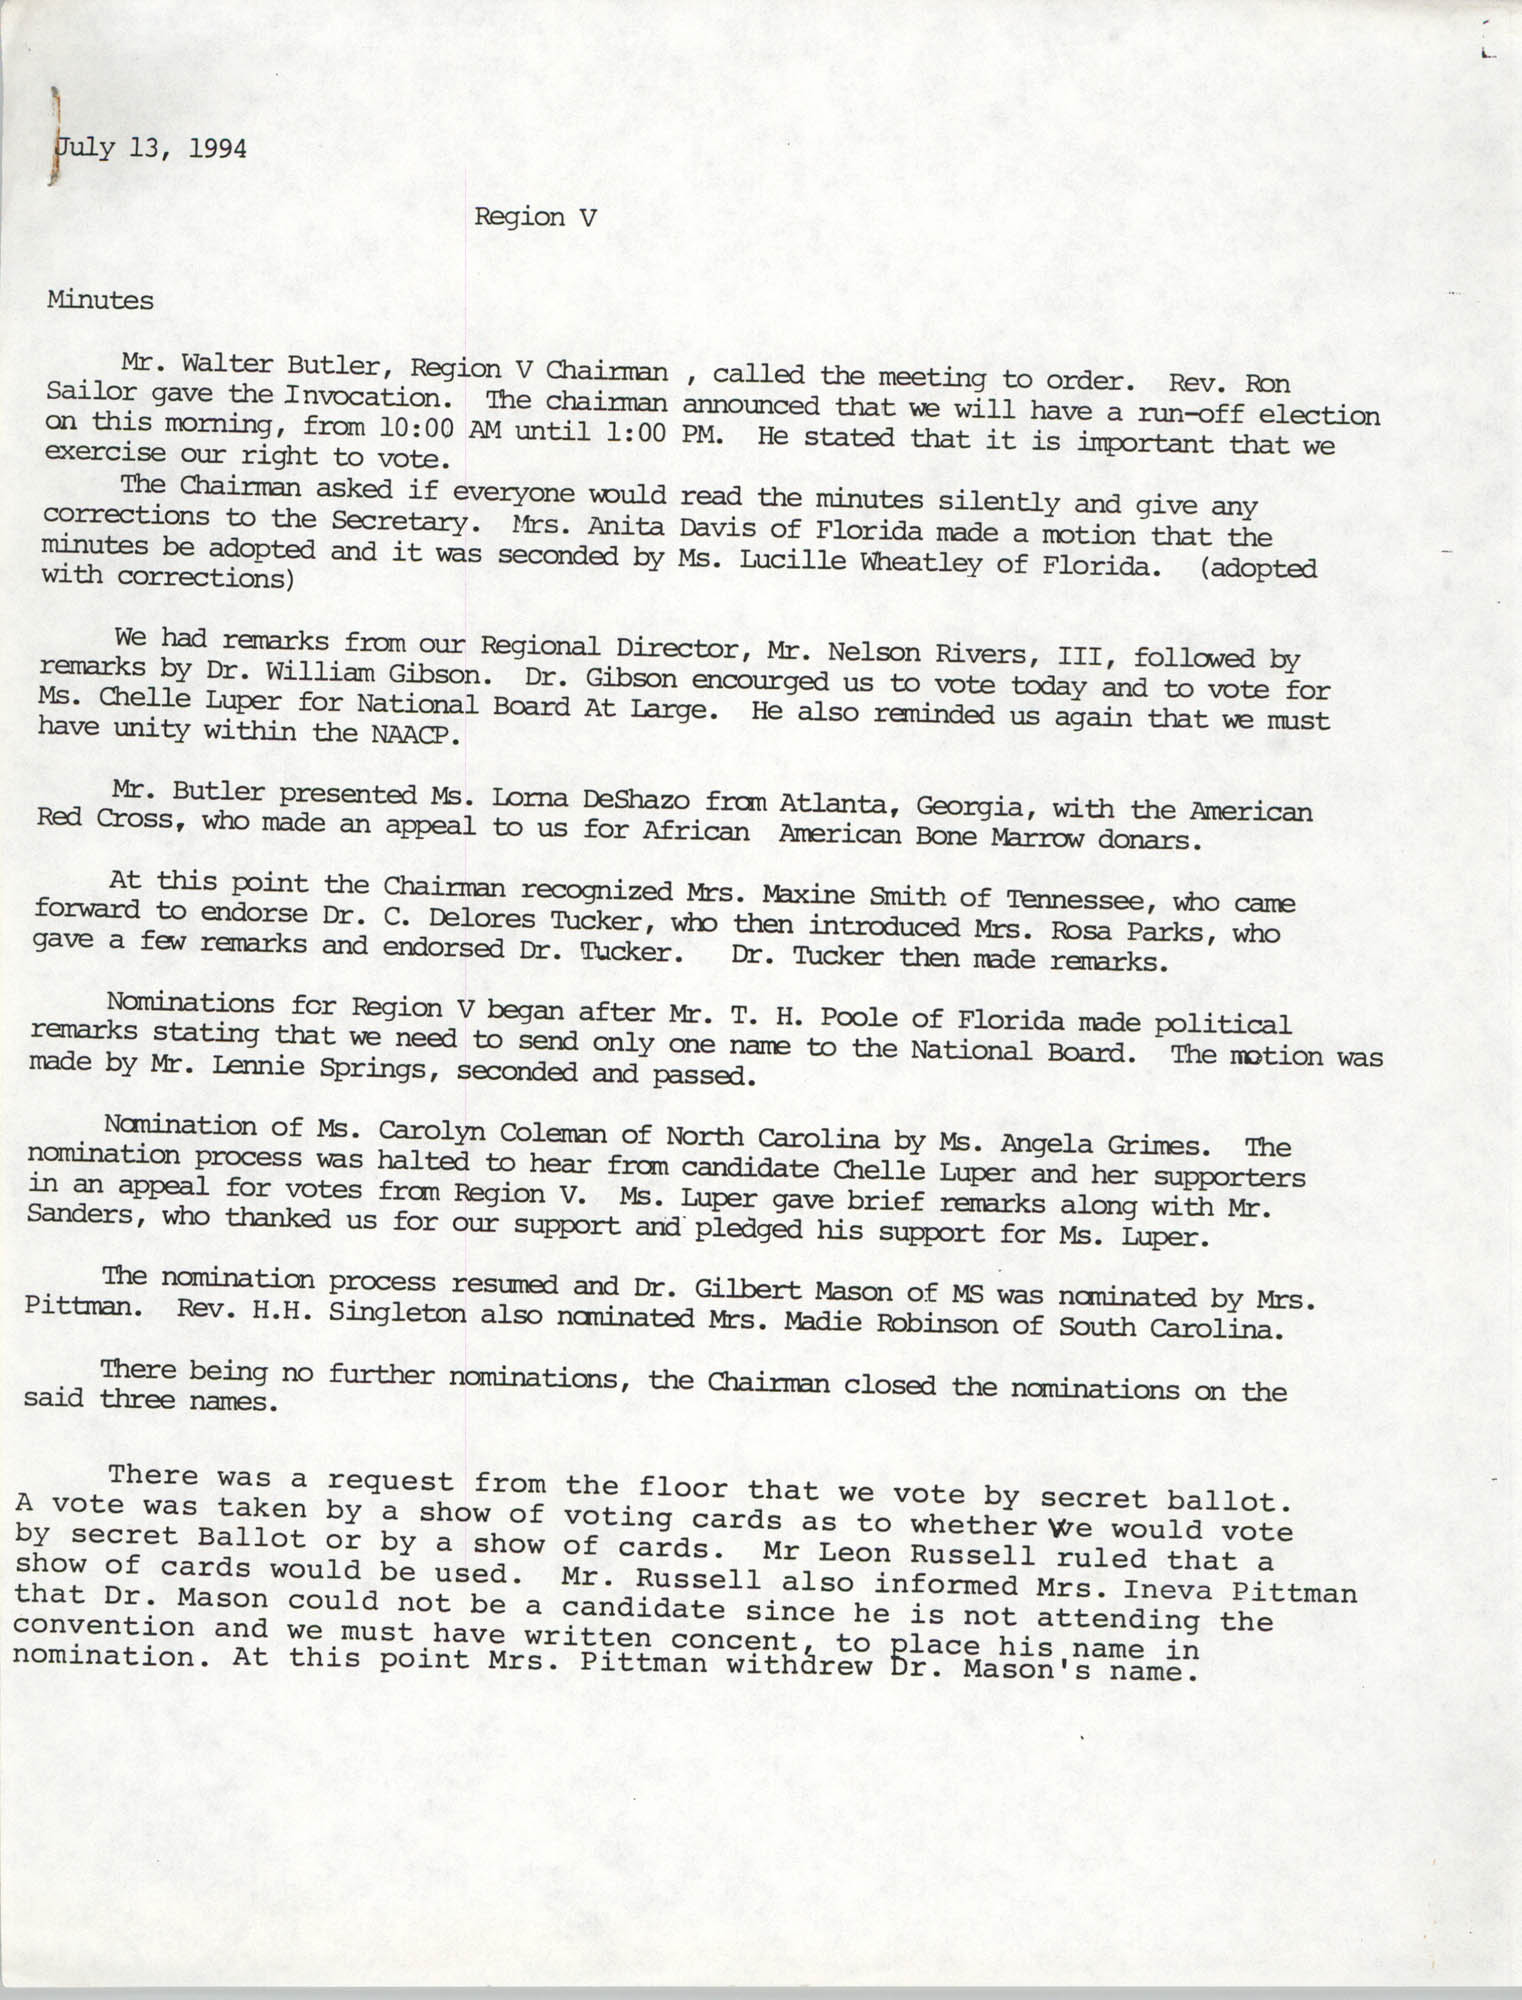 Minutes, Charleston Branch of the NAACP Region V Meeting, July 13, 1994